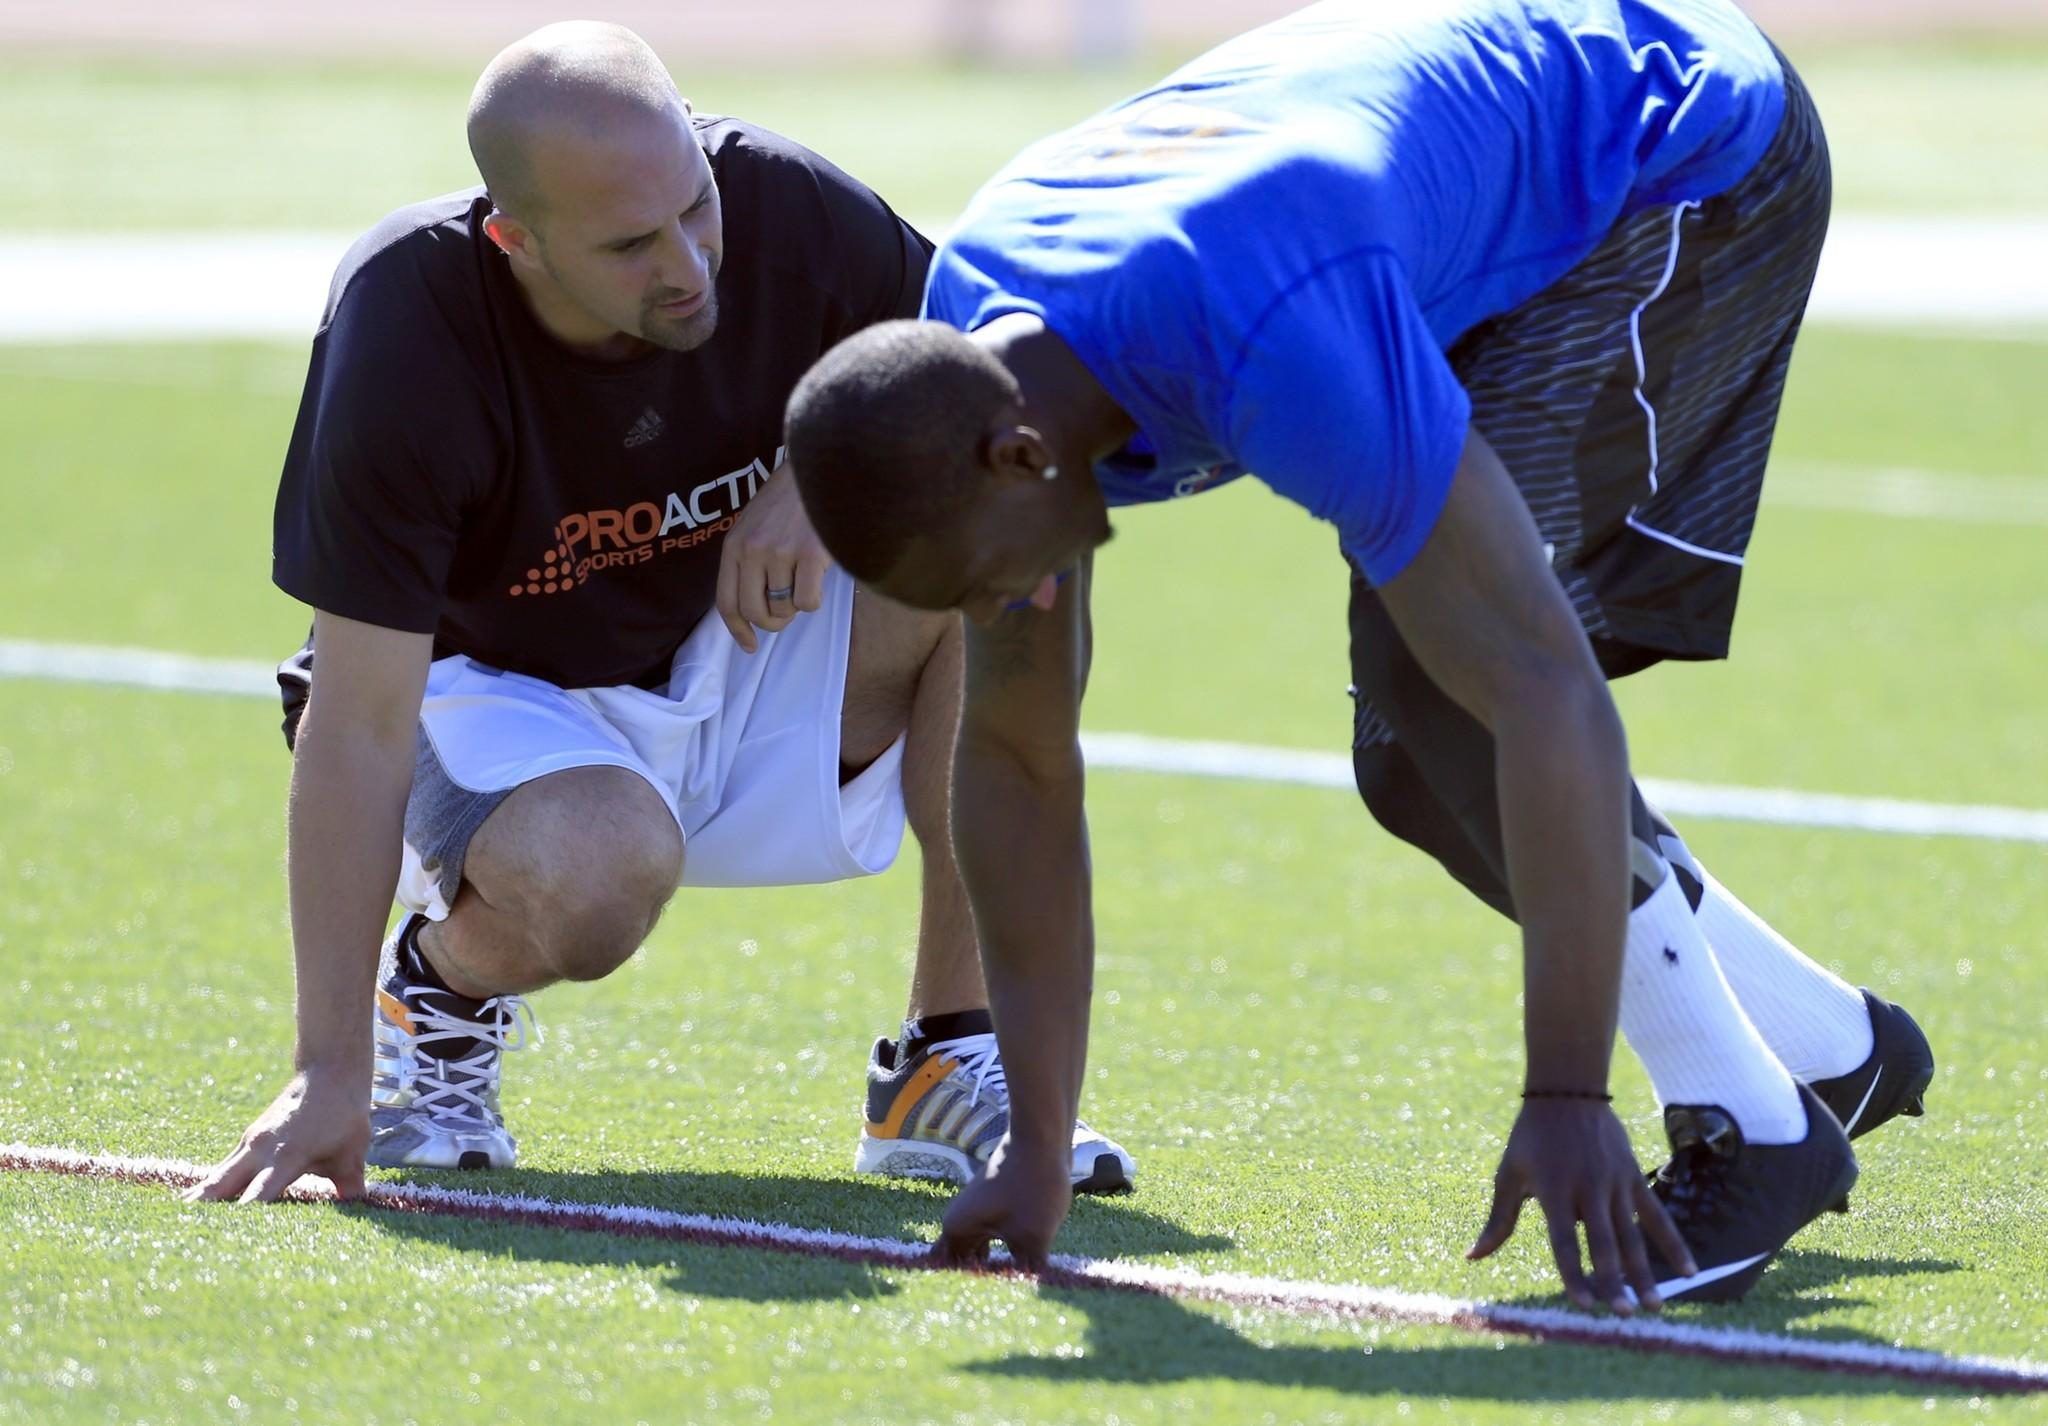 Marqise Lee, an All-American receiver while at USC, works on his starting form for the 40-yard dash with Proactive Sports Performance trainer Ryan Capretta during a training session at Laguna Hills High.